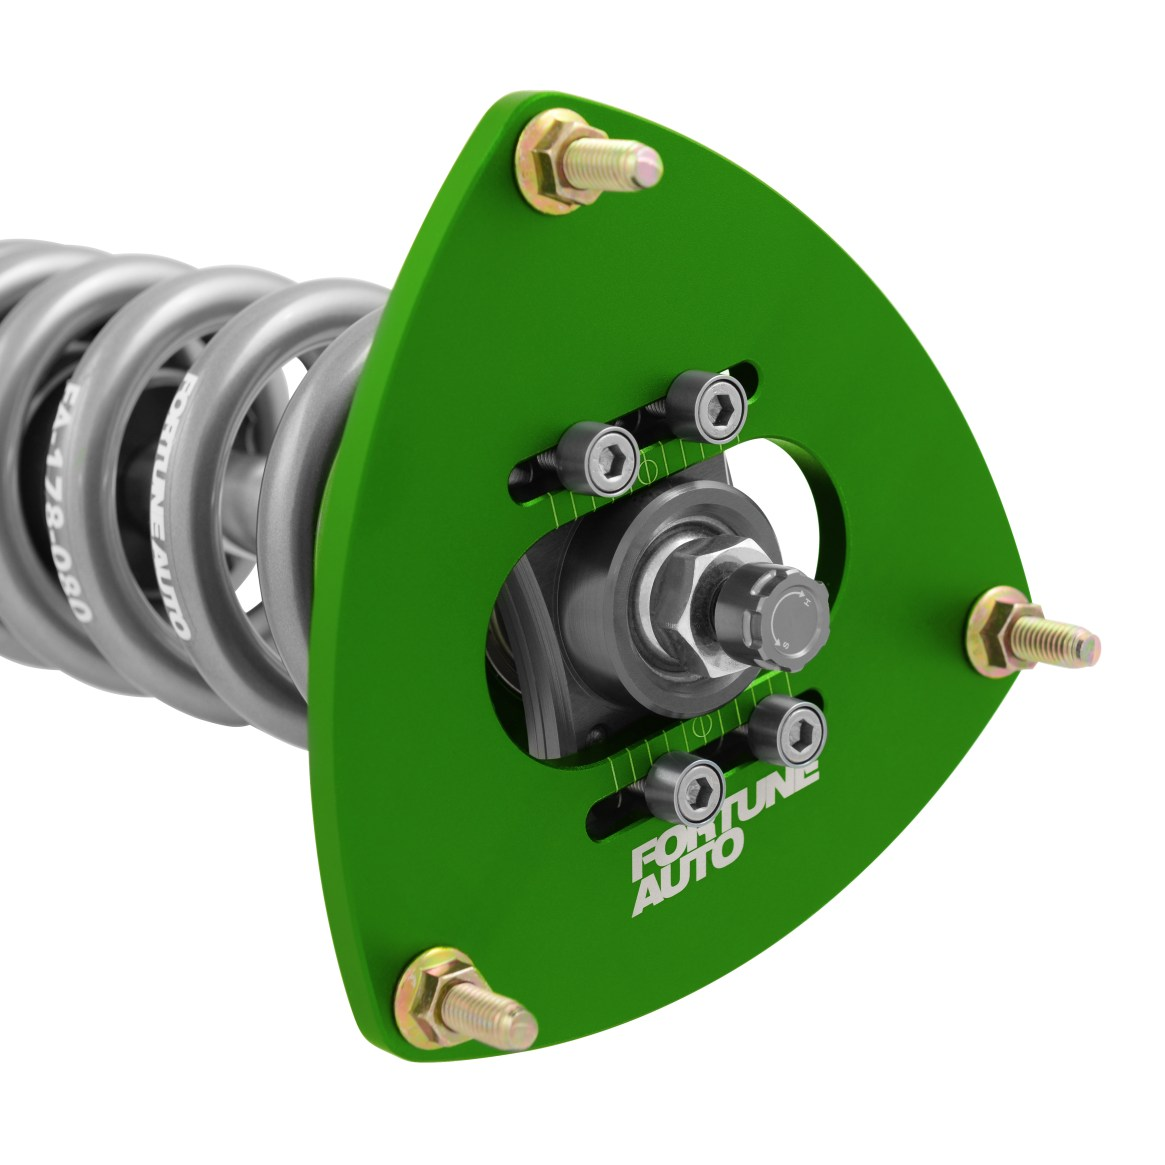 Fortune Auto 500 Series coilovers – adjustable coilover camber plate